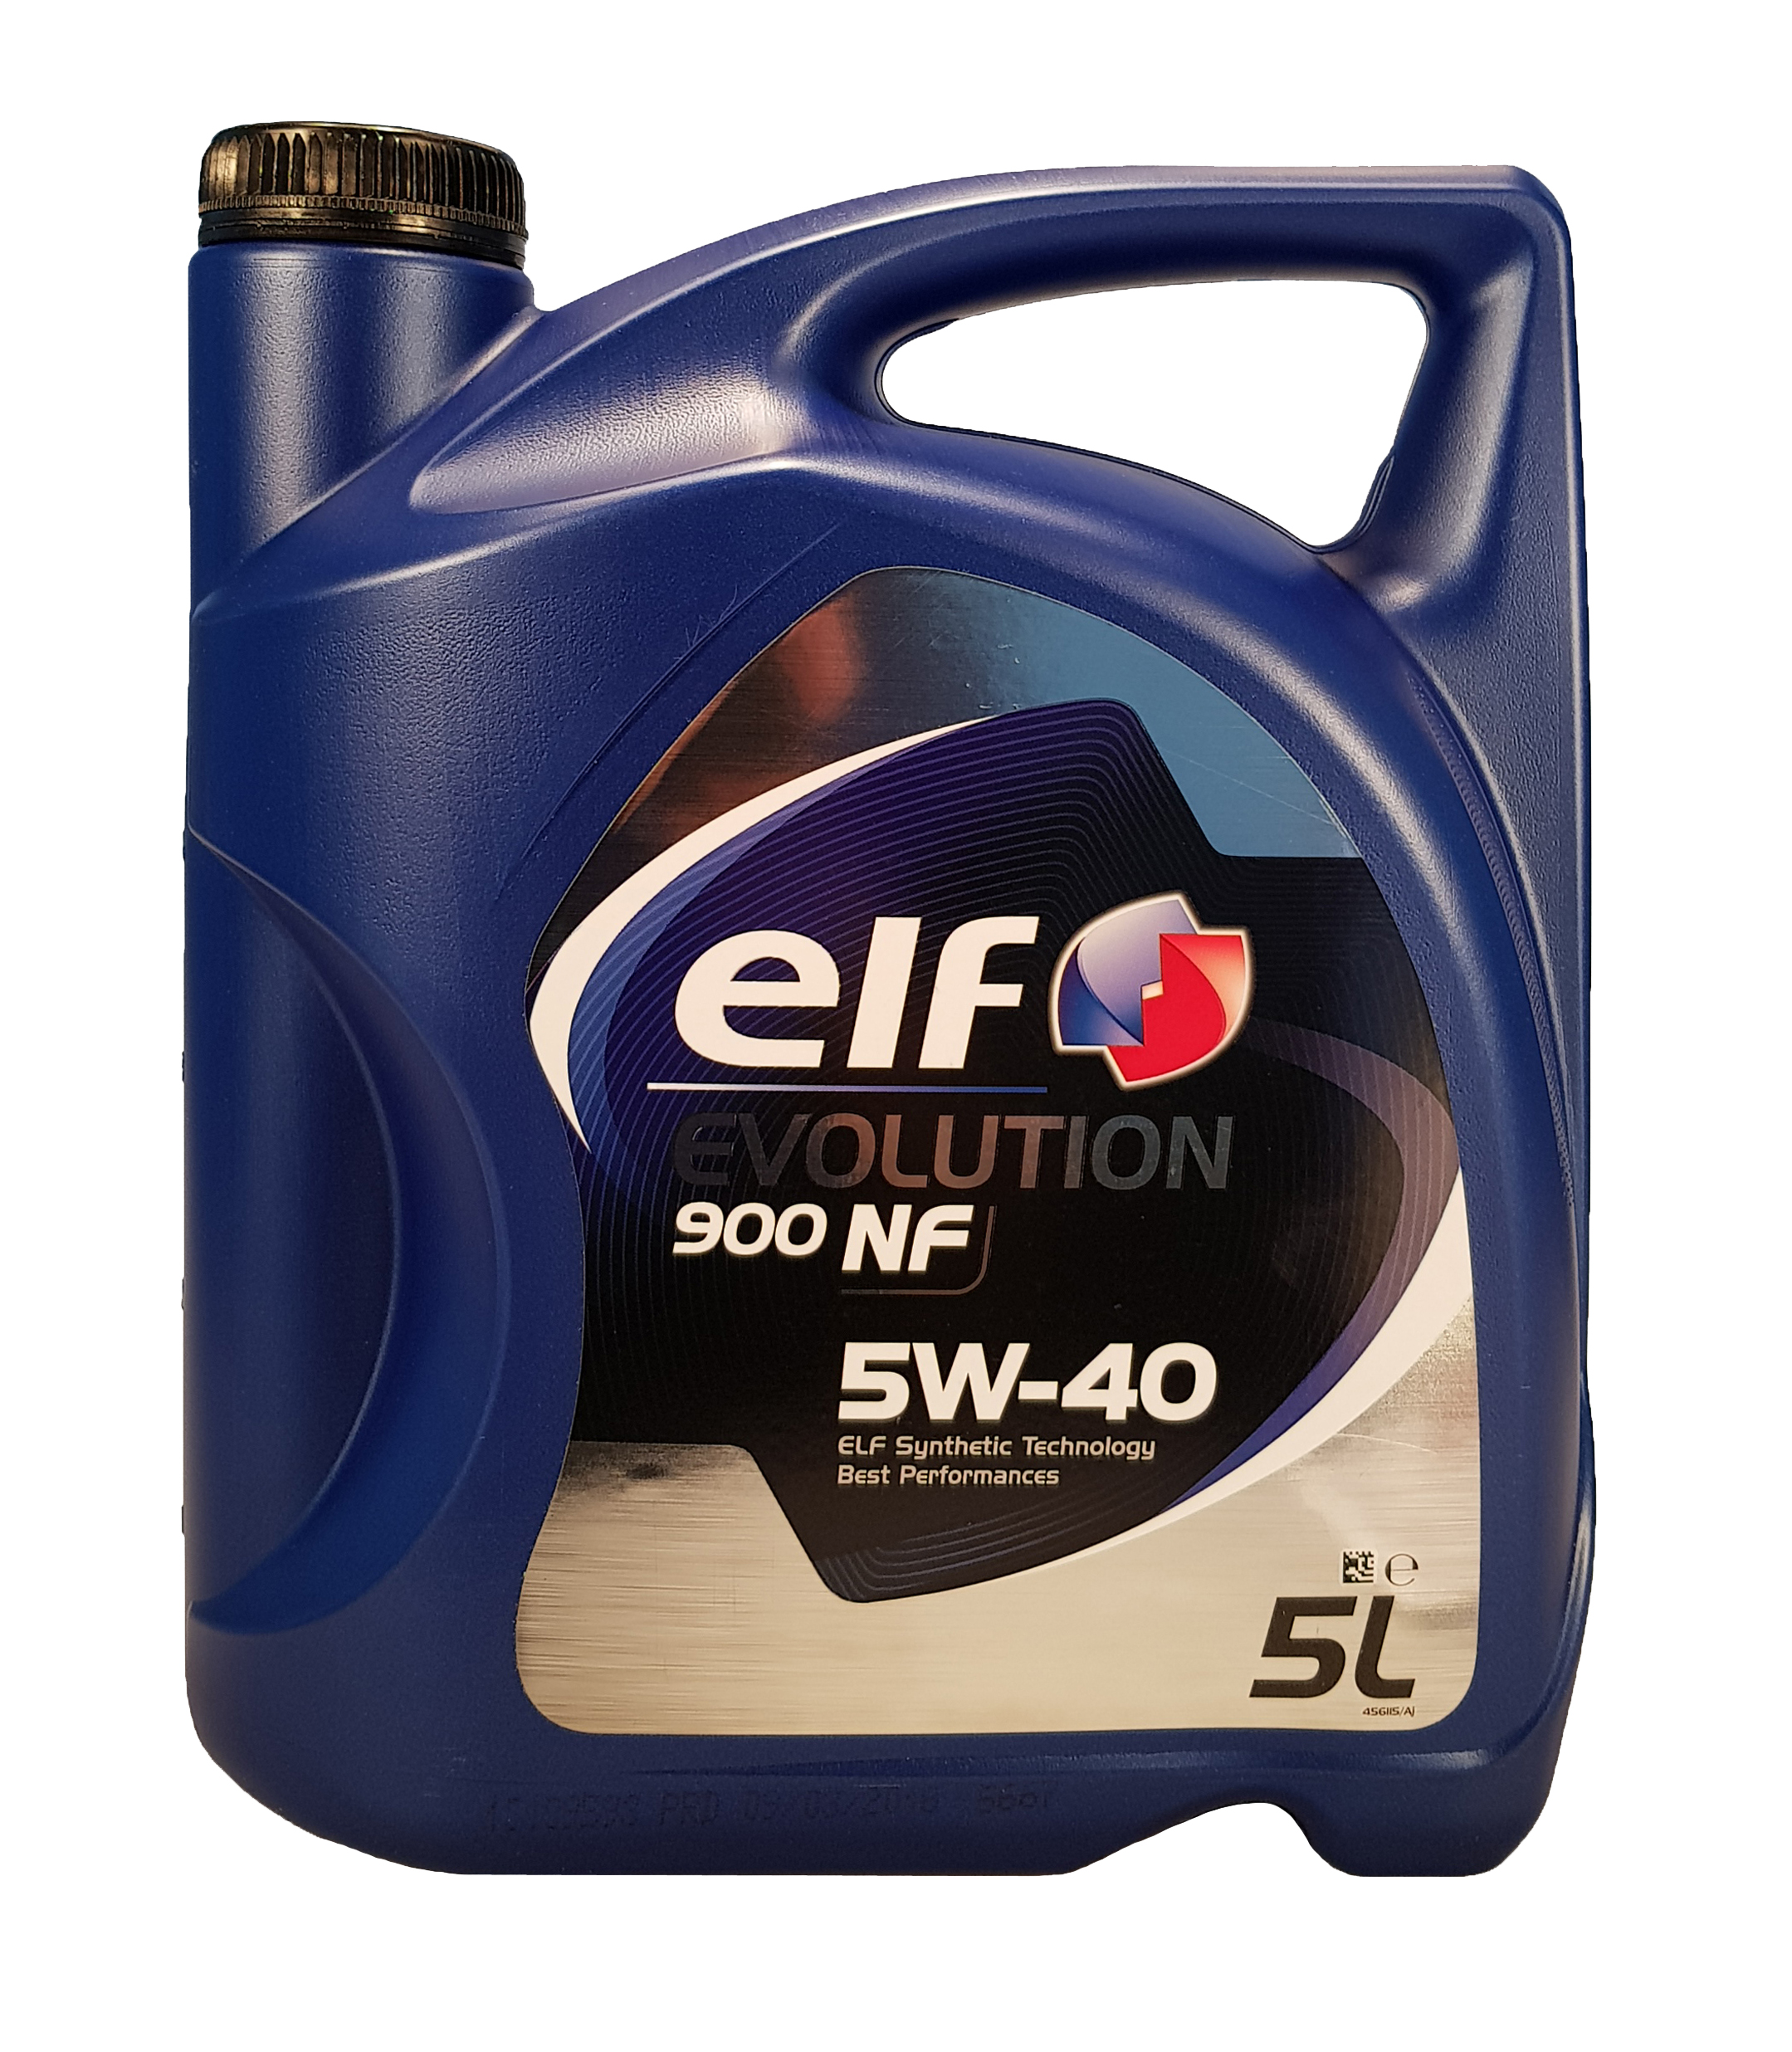 Elf Evolution 900 NF 5W-40 5 Liter – Bild 1